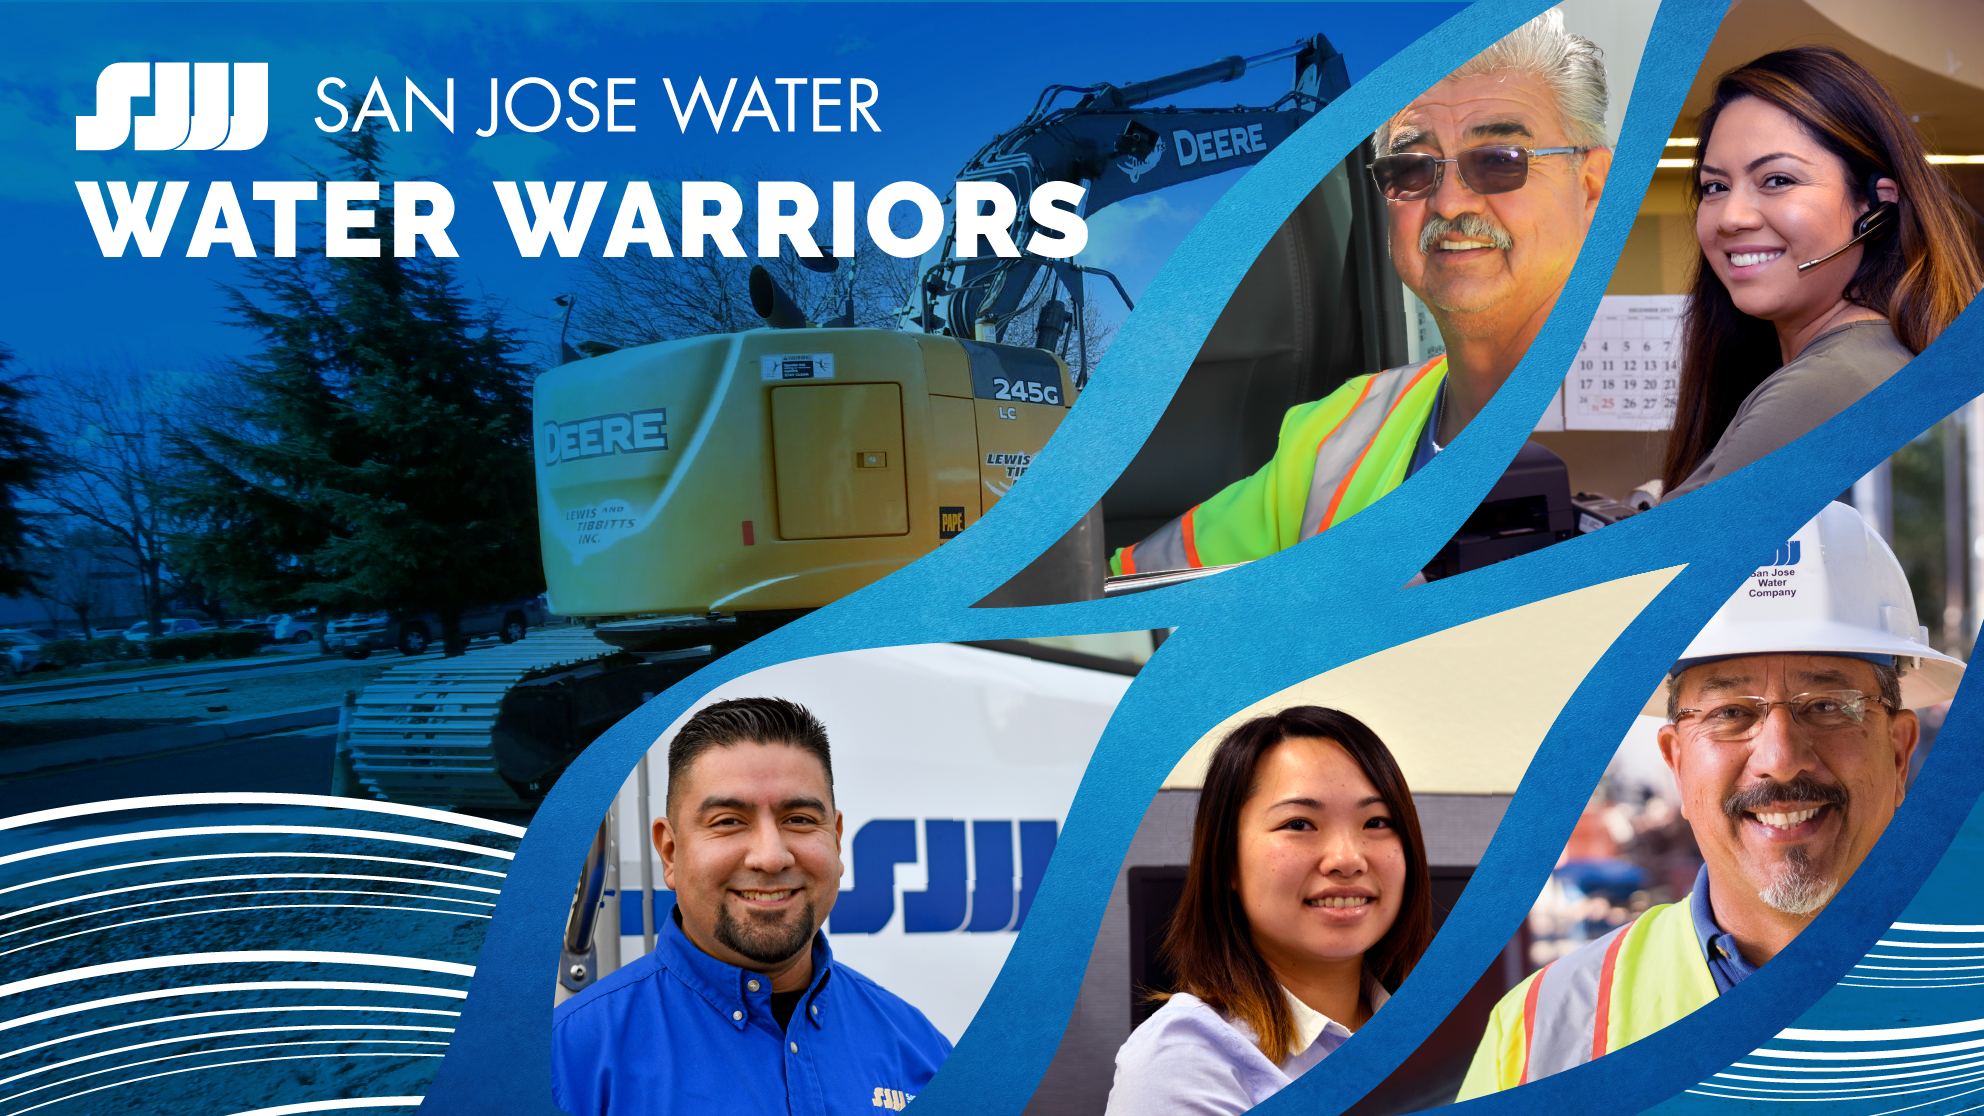 San Jose Water Water Warriors - 5 employees in a collage